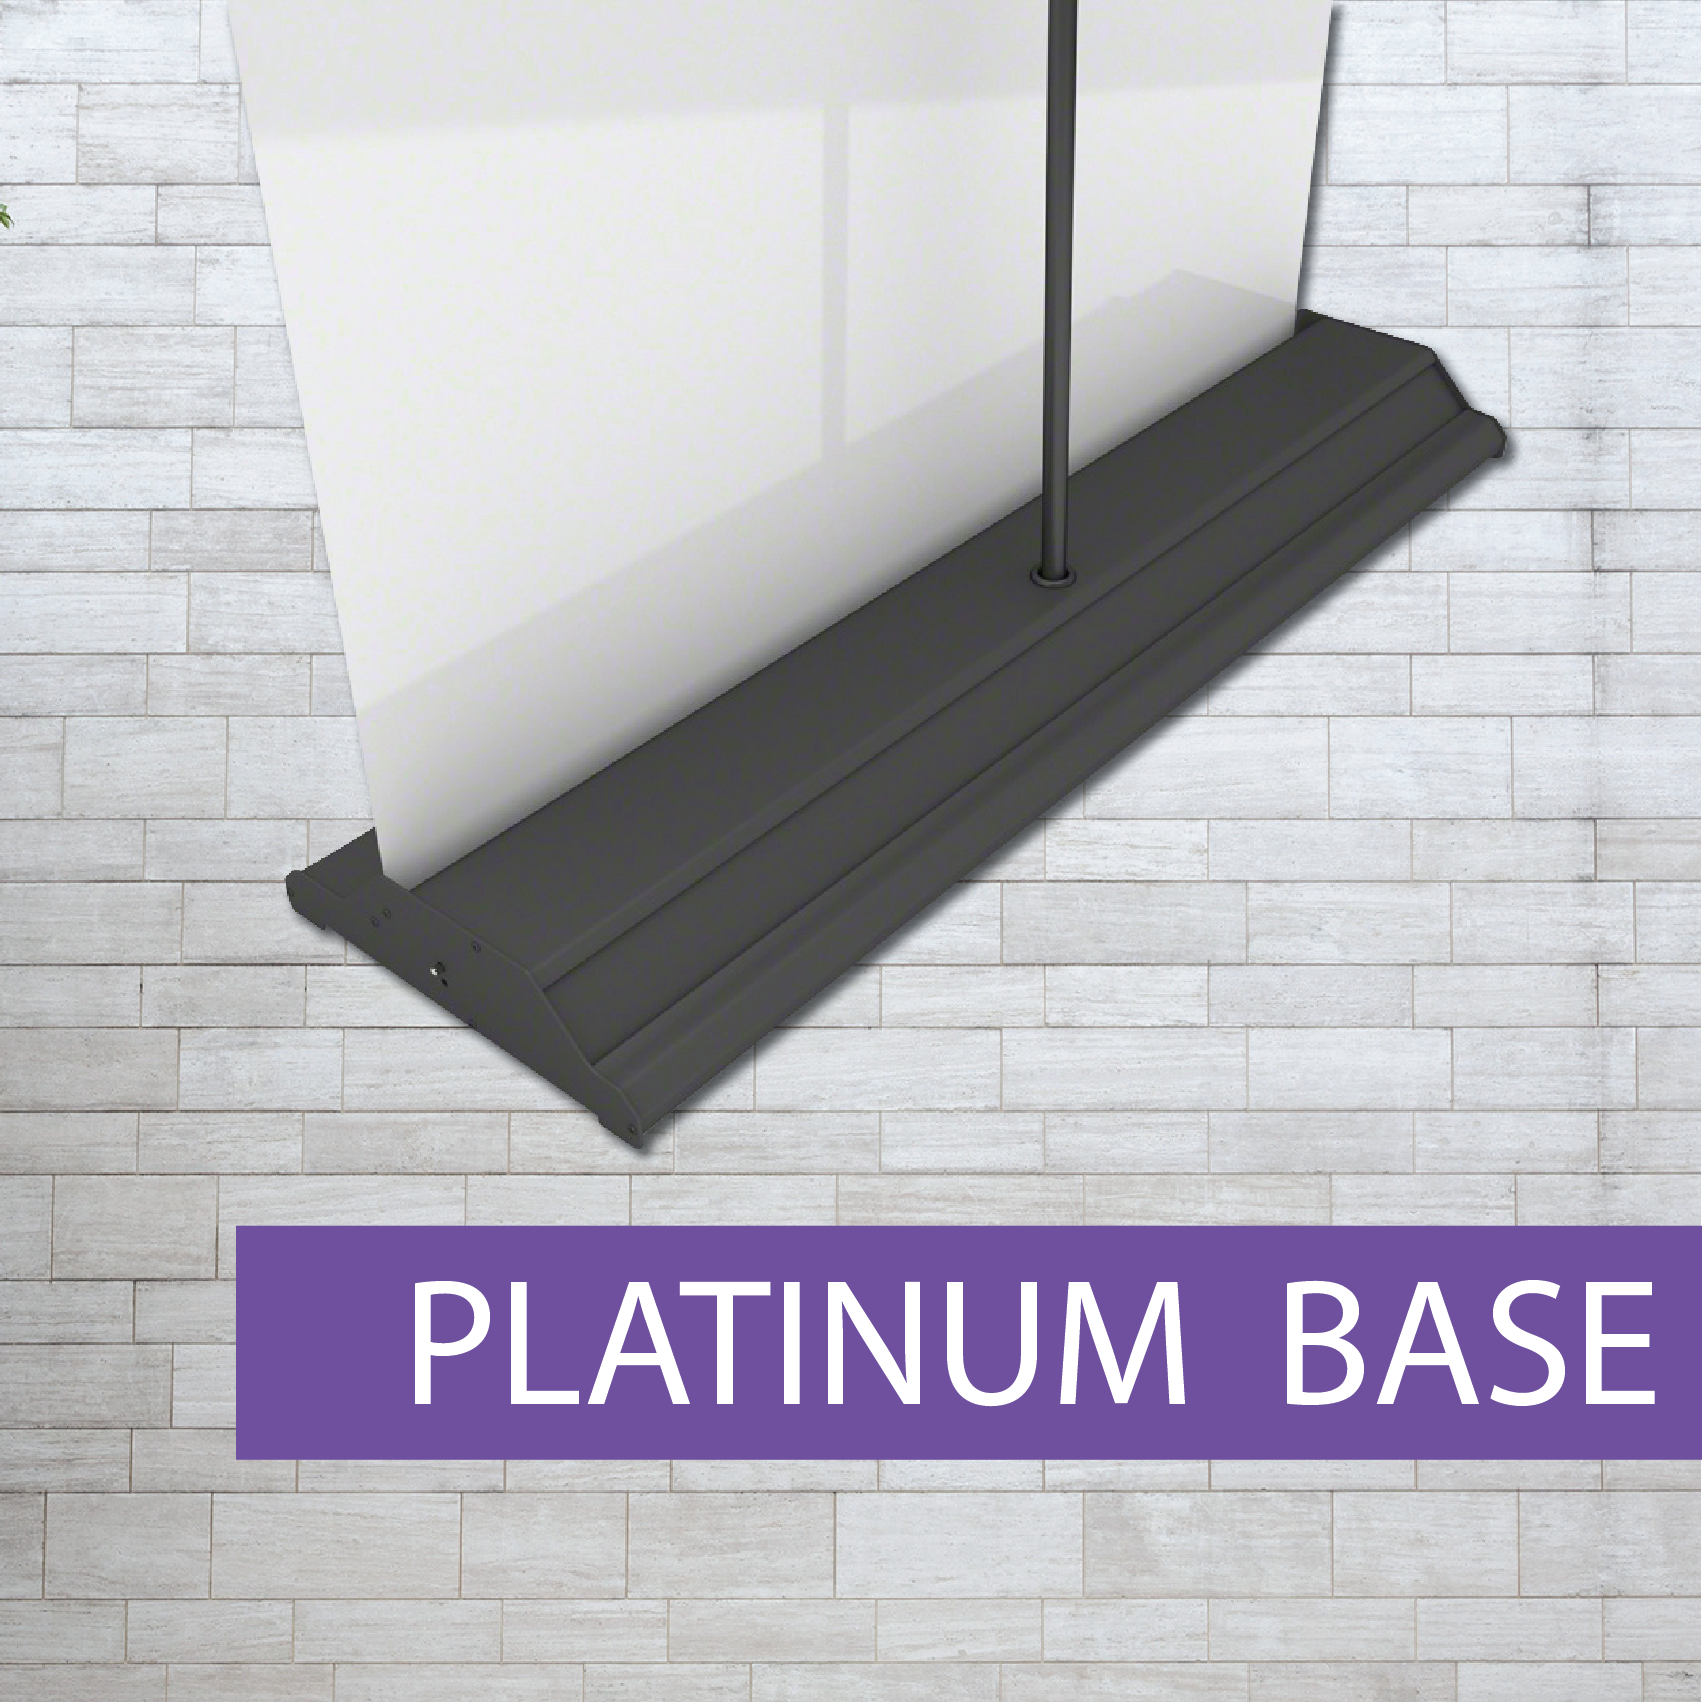 Platinum class pull-up banner rear